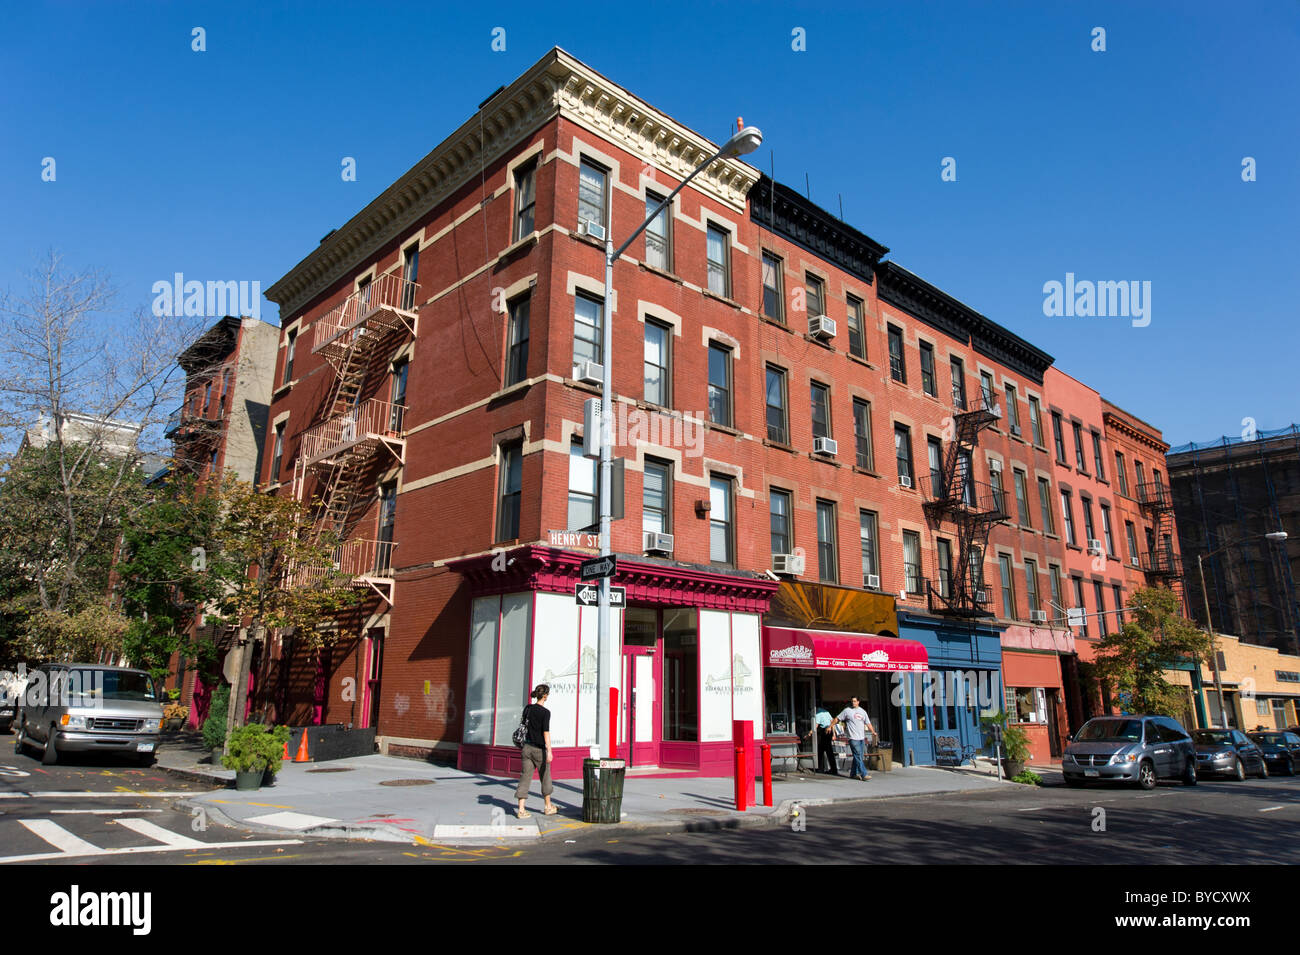 Henry Street in the Brooklyn Heights neighbourhood, New York City, USA - Stock Image